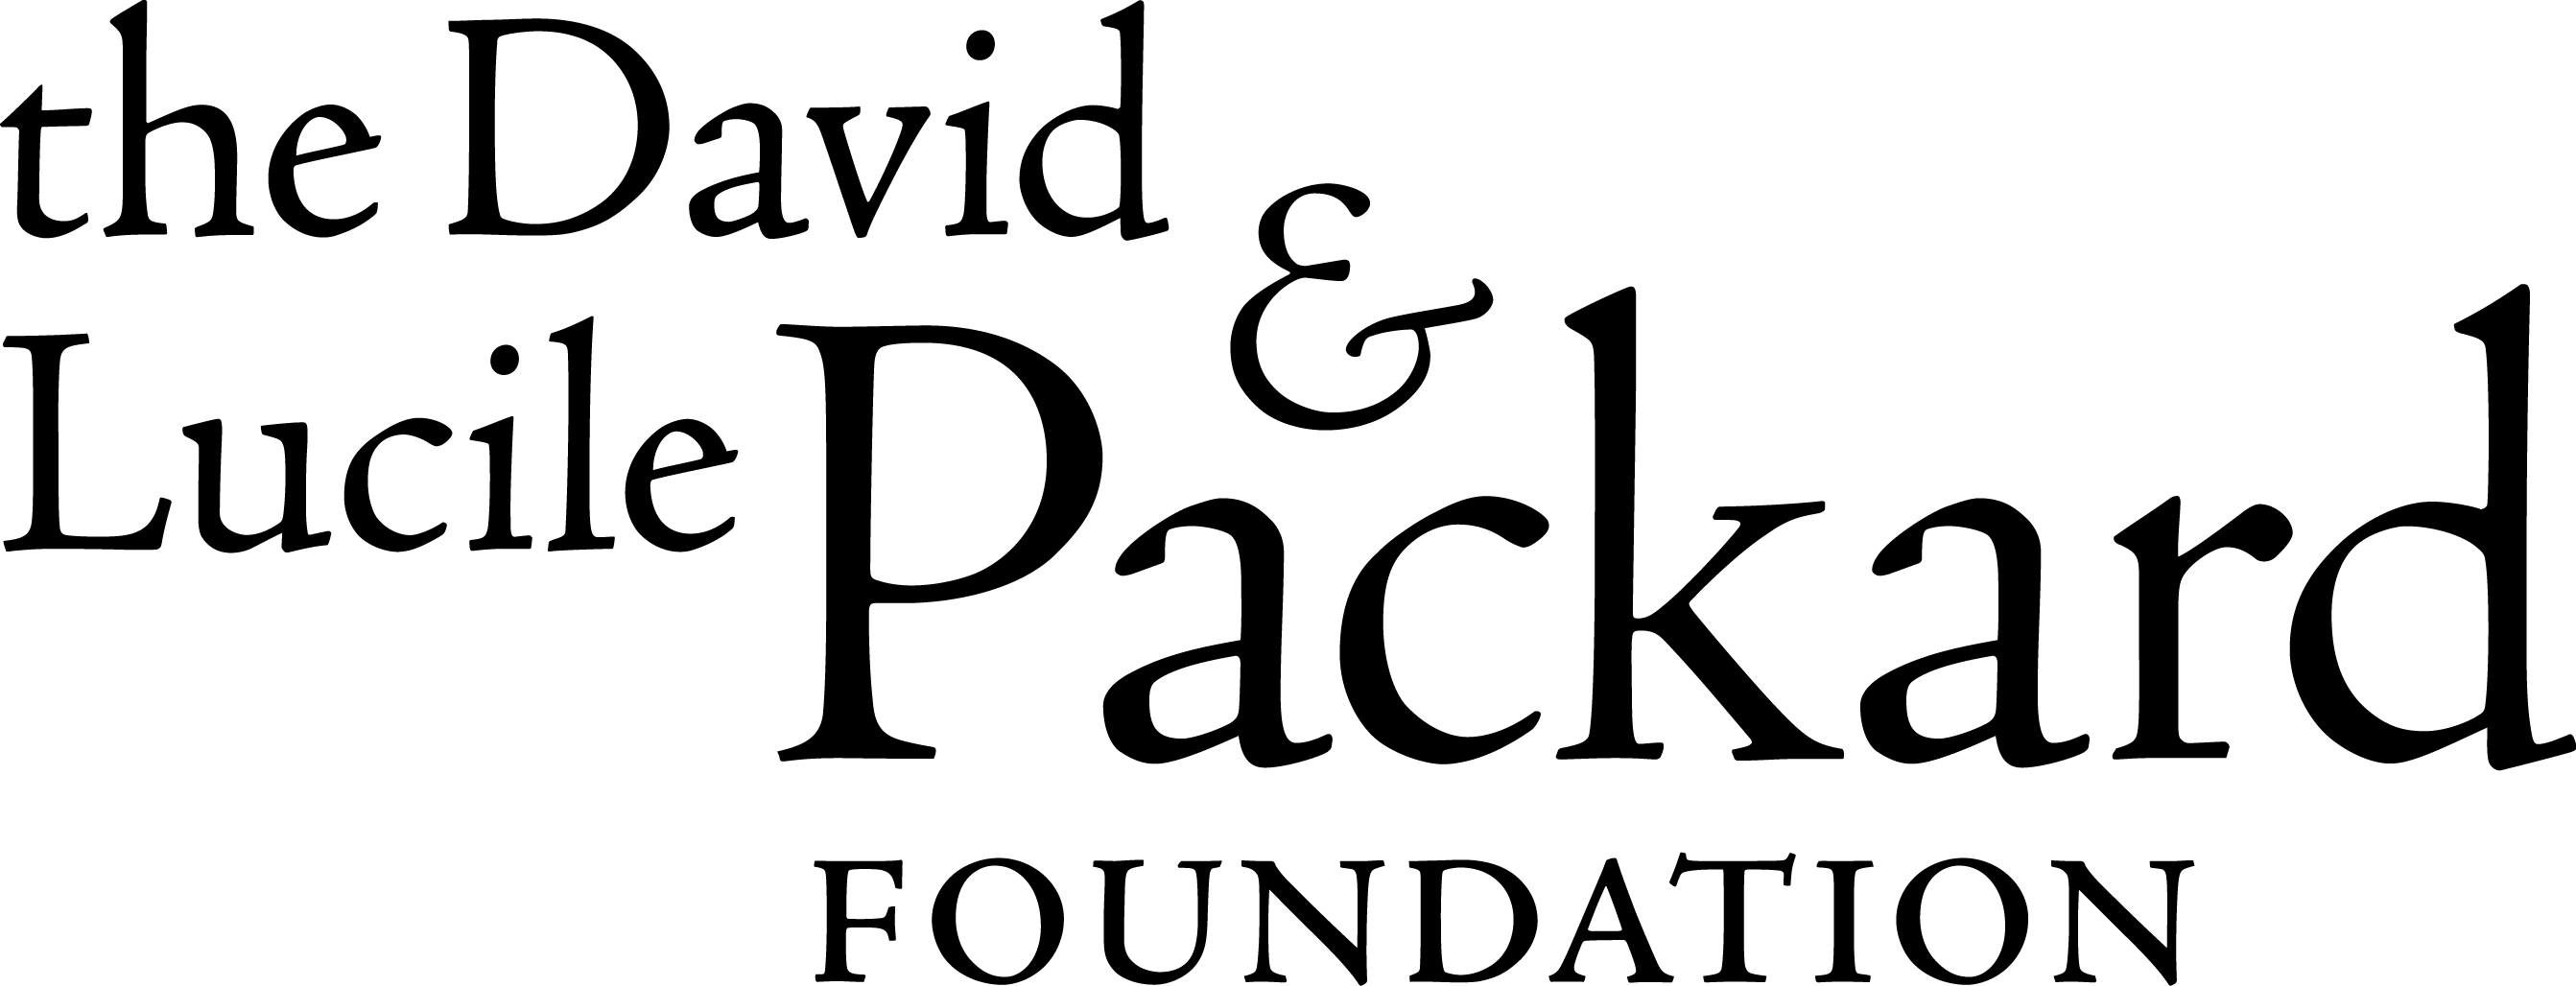 The David & Lucile Packard Foundation Logo